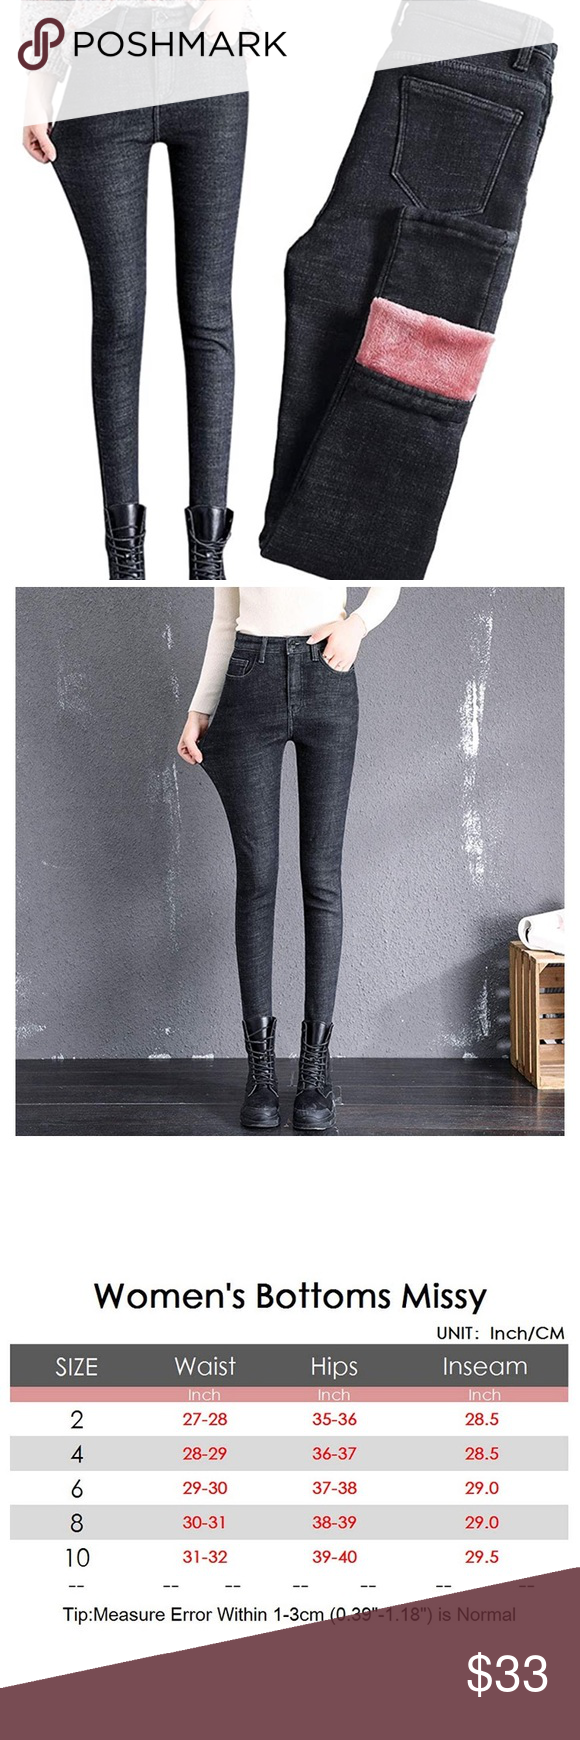 Warm Lined Jeans In 2020 Lined Jeans Jeans Clothes Design